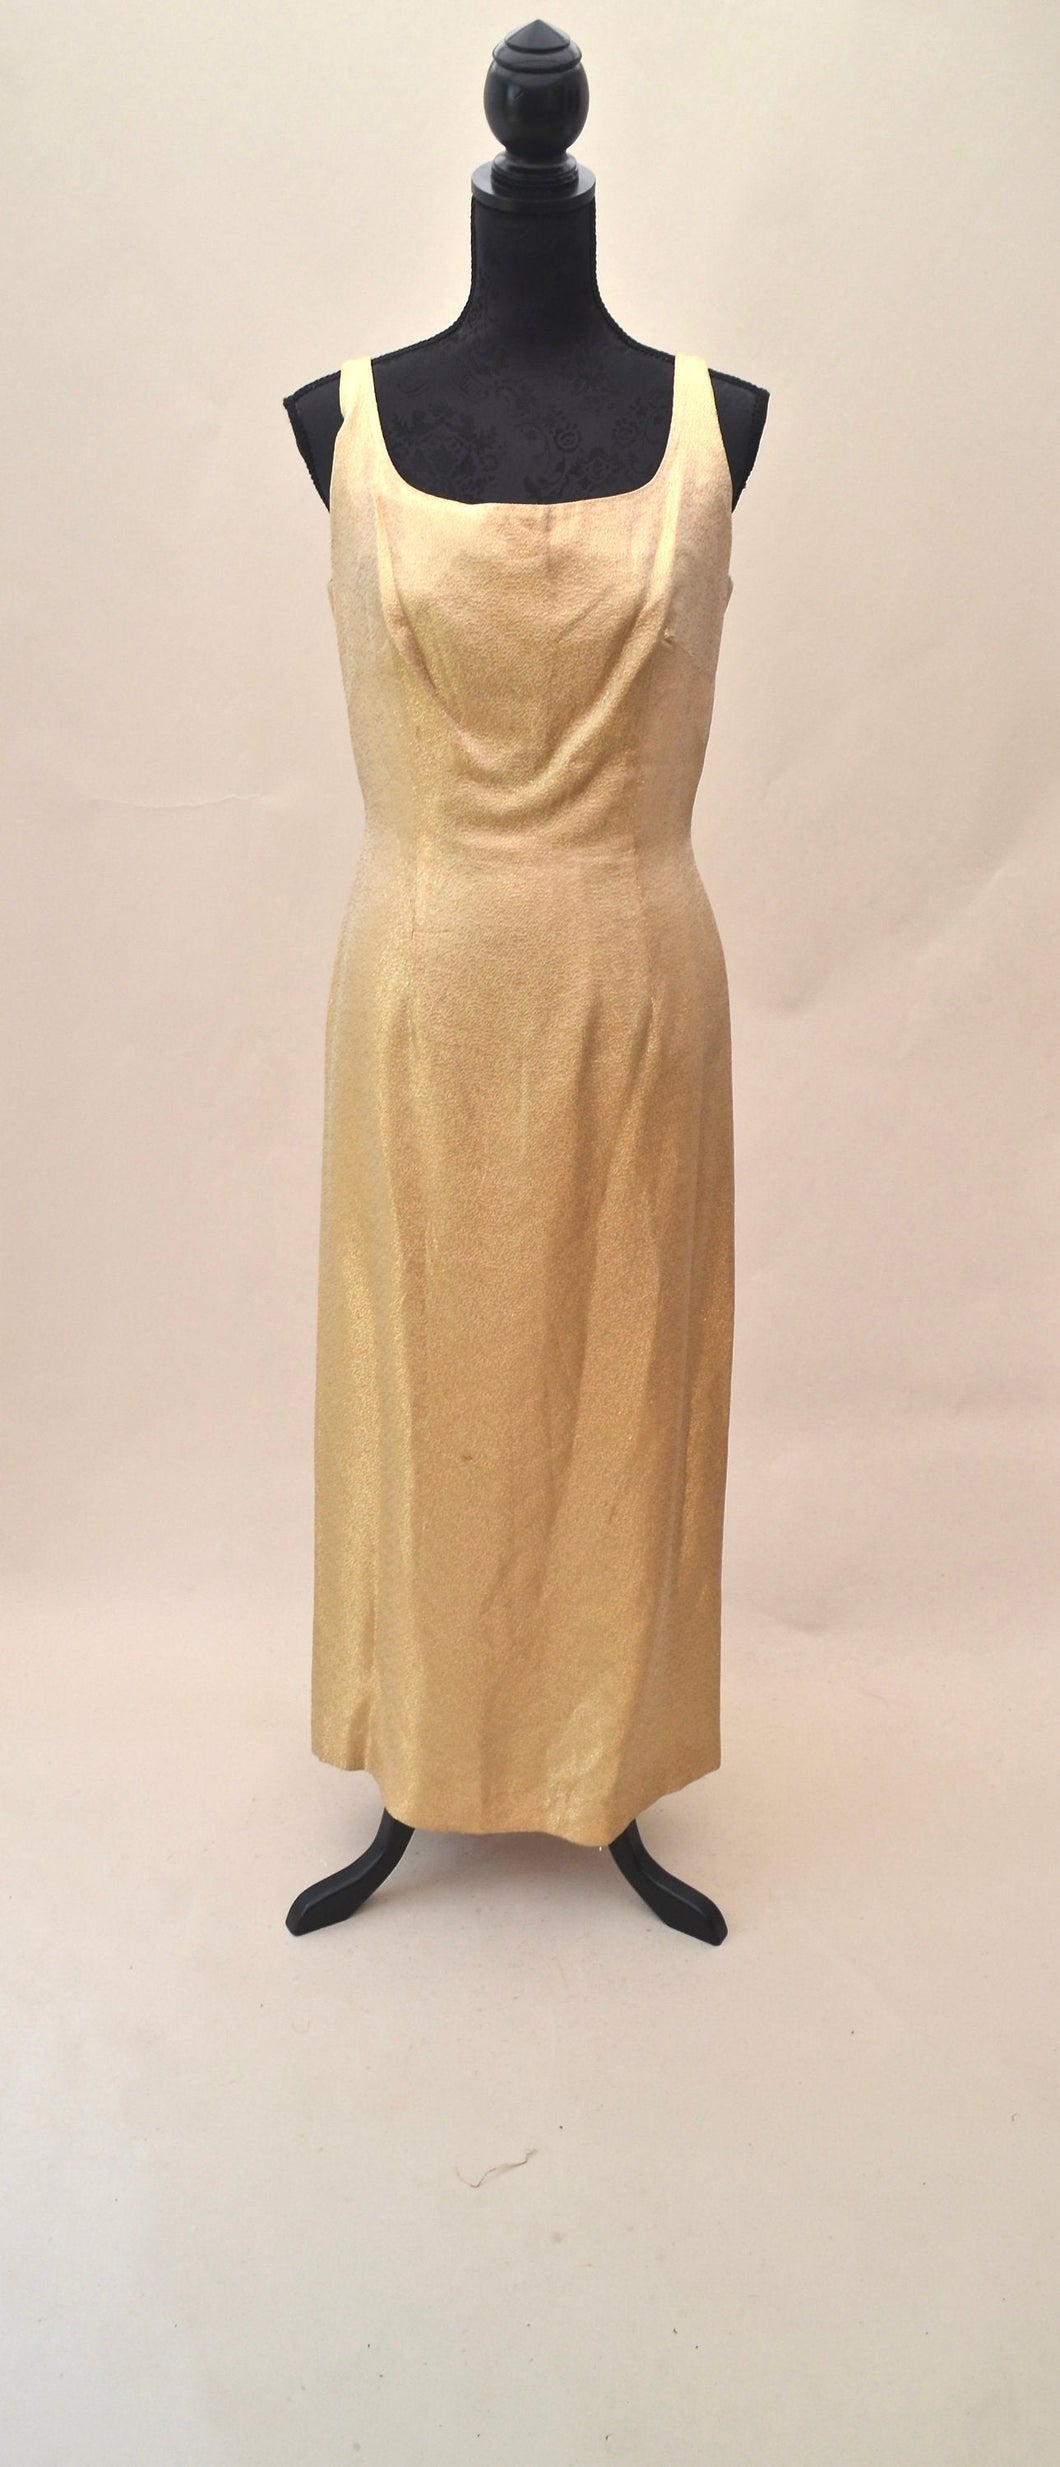 1970s Maxi dress | Dress with side split | Plunge back  dress | Est UK size 10